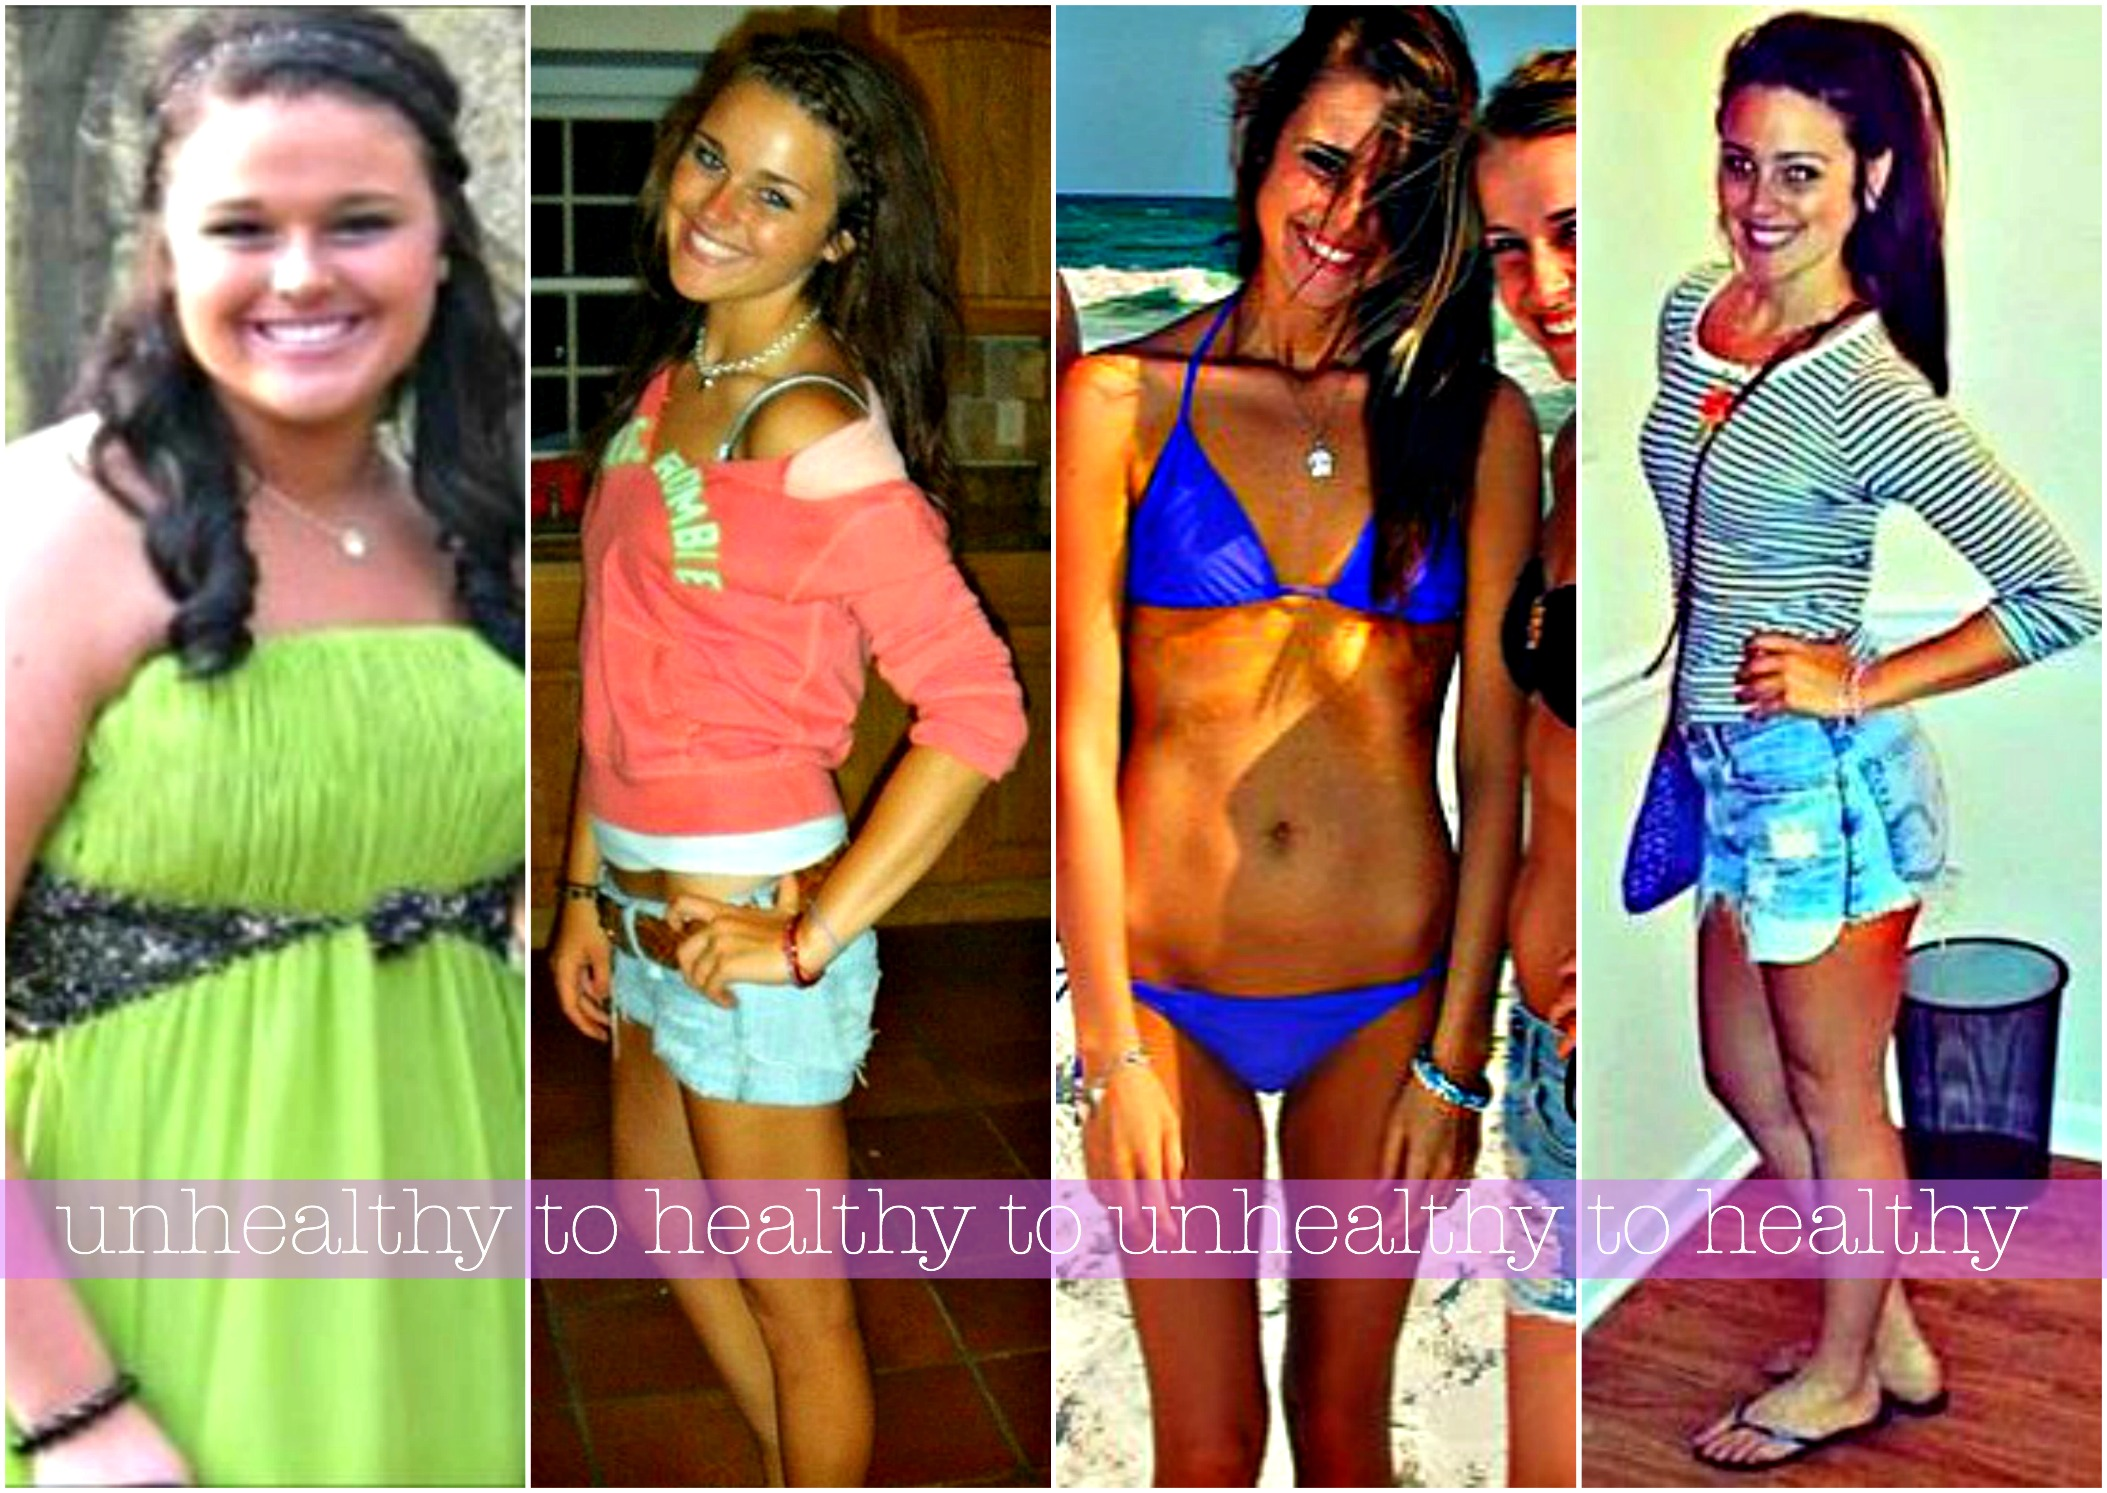 Eating Disorder Recovery and Being Overweight Eating Disorder Recovery and Being Overweight new images